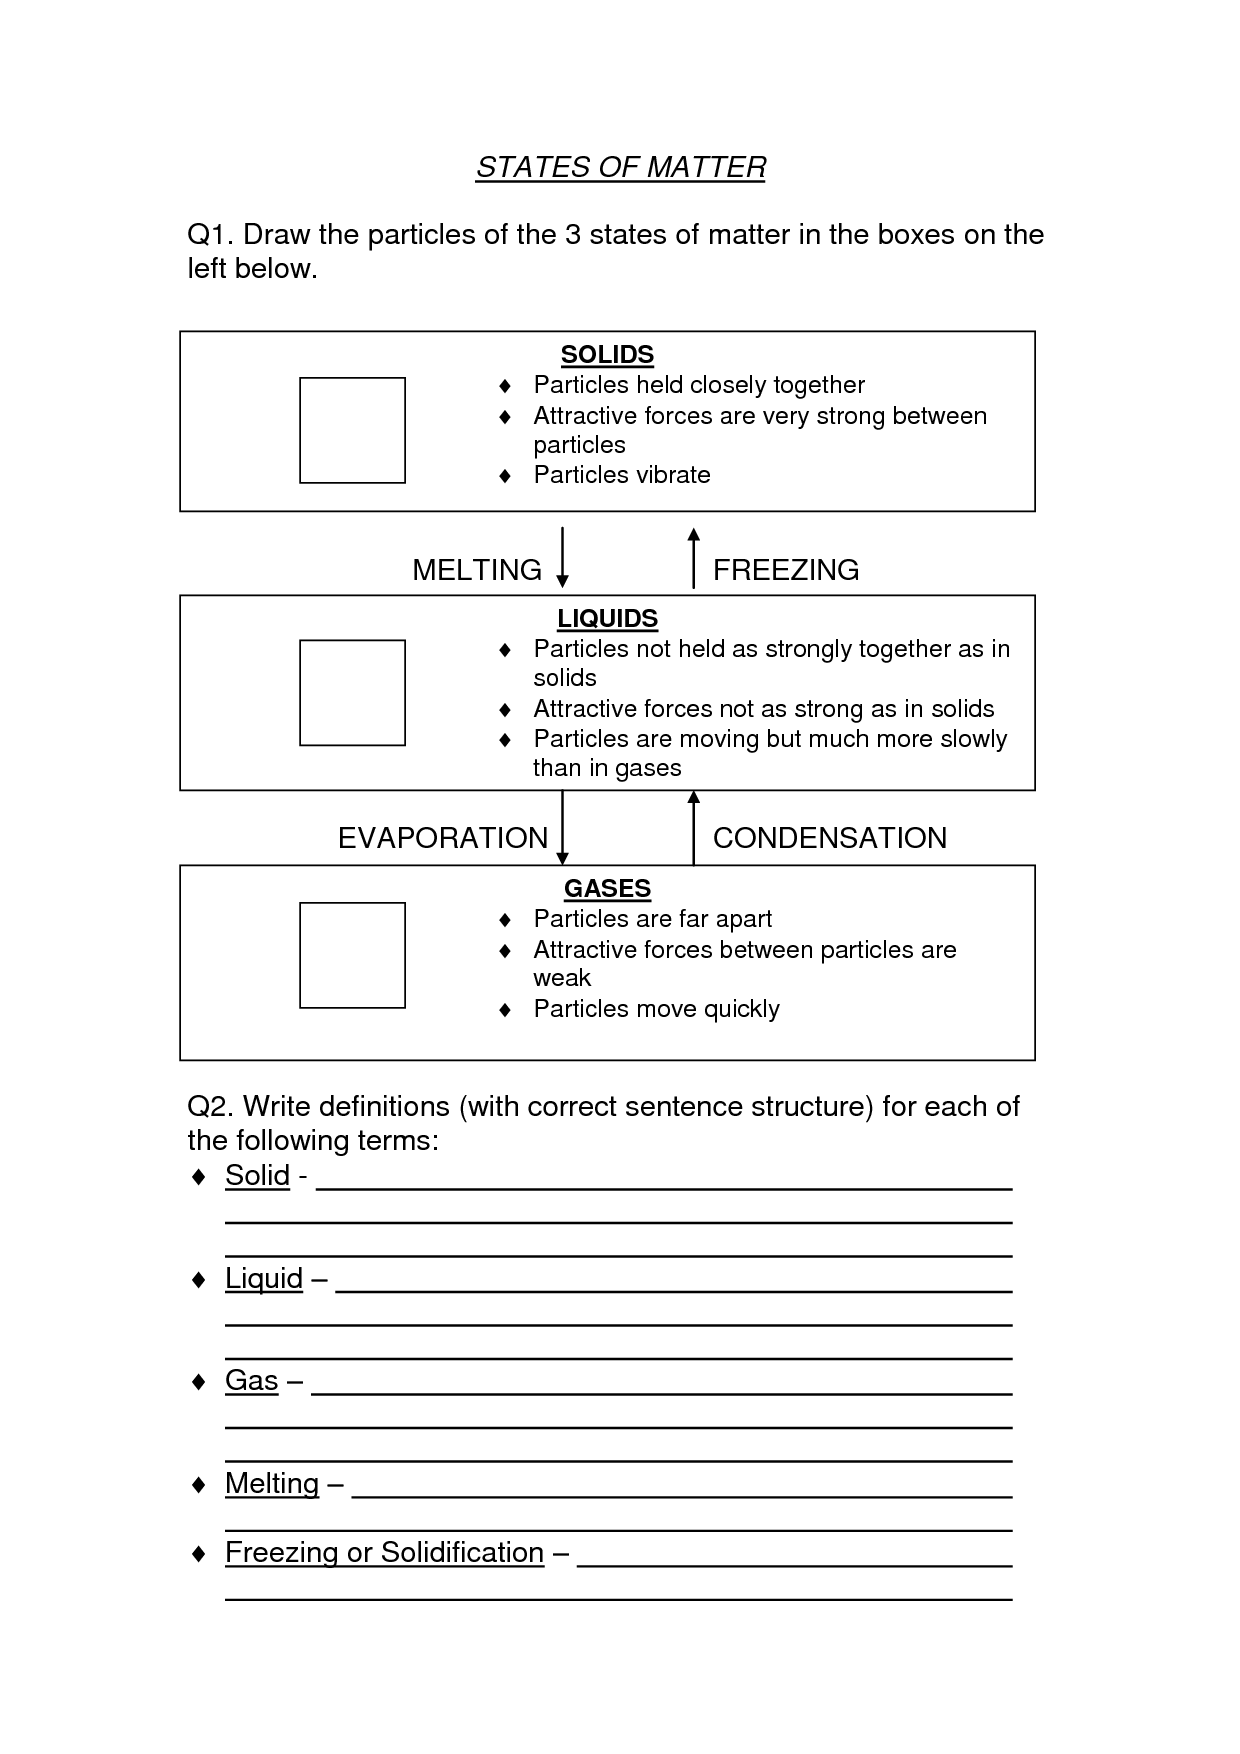 worksheet Fifth Grade Science Worksheets free printable matter worksheets 5th grade states of middle school science